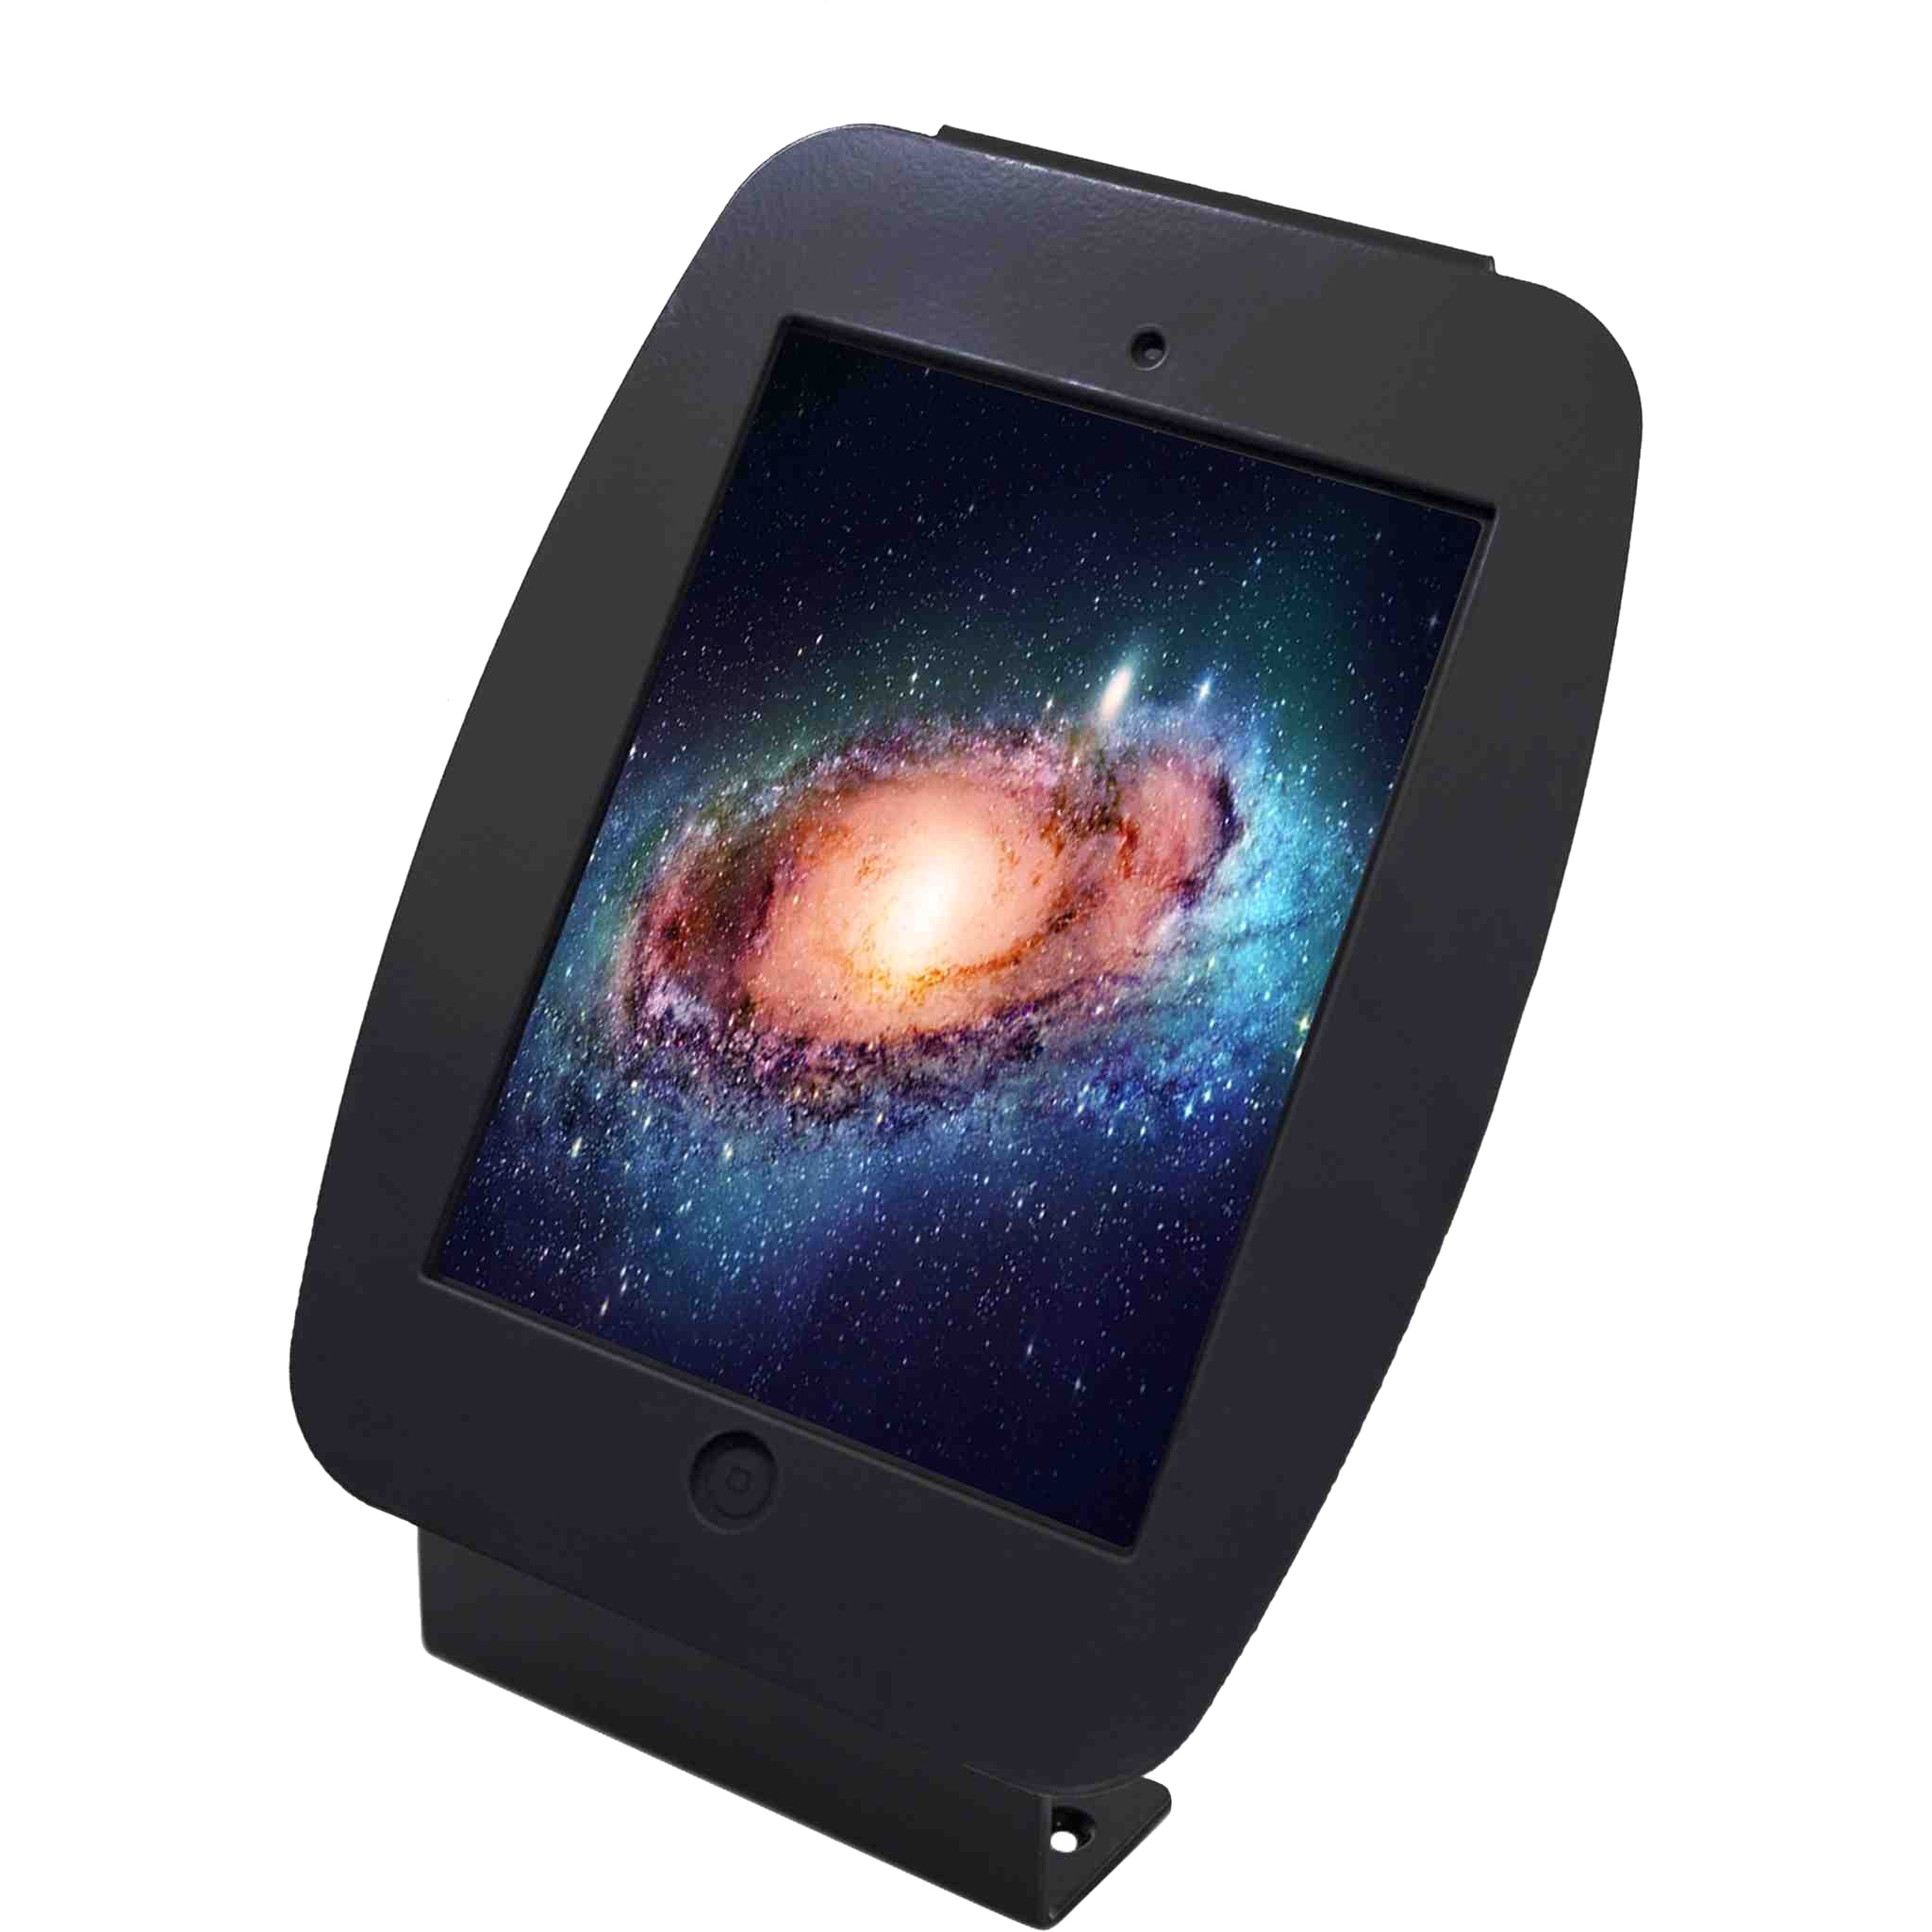 """MacLocks 101B235SMENB MacLocks Introducing ""Space"" Mini - iPad Mini Enclosure Kiosk - Black - Black"""